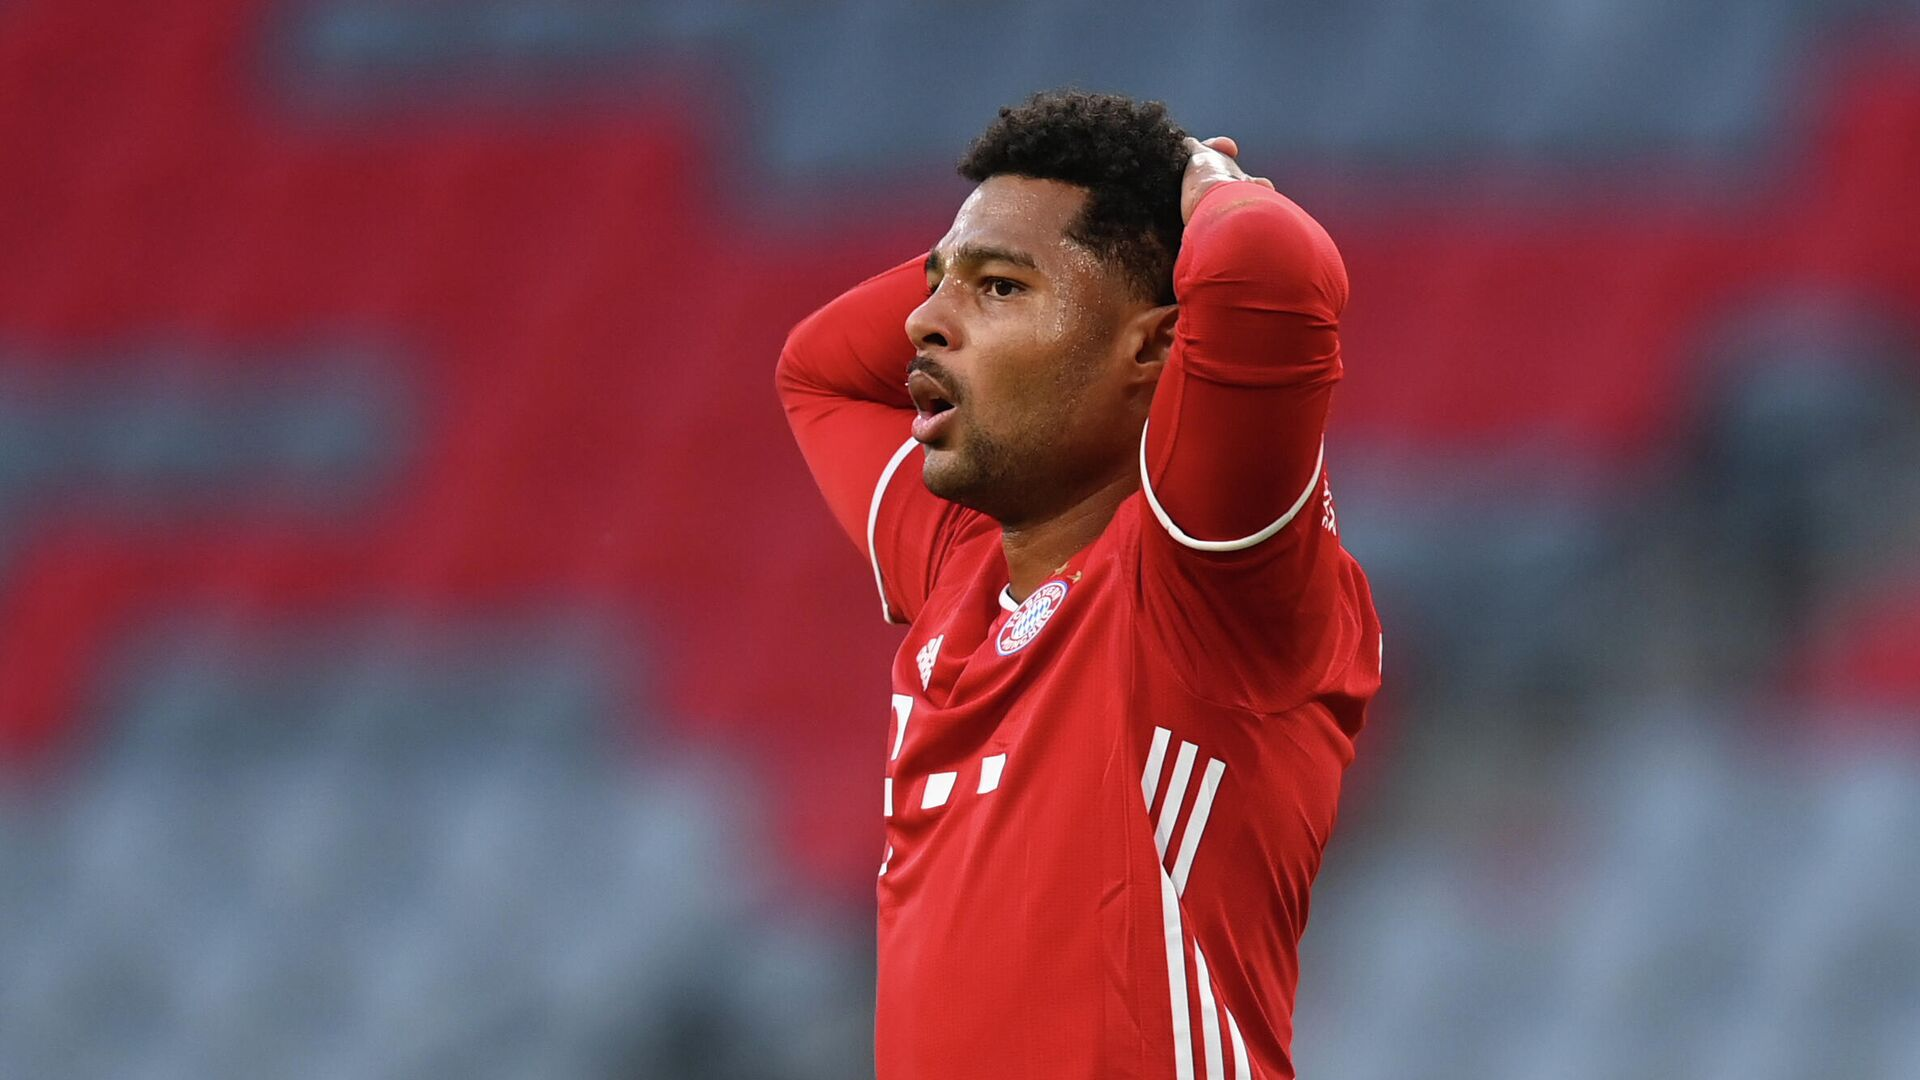 (FILES) In this file photo taken on October 4, 2020 Bayern Munich's German midfielder Serge Gnabry reacts during the German first division Bundesliga football match FC Bayern Munich vs Hertha Berlin in Munich, southern Germany. - Bayern Munich's German midfielder Serge Gnabry has tested positiv for Covid-19 the club reported on October 20, 2020. (Photo by CHRISTOF STACHE / AFP) / DFL REGULATIONS PROHIBIT ANY USE OF PHOTOGRAPHS AS IMAGE SEQUENCES AND/OR QUASI-VIDEO - РИА Новости, 1920, 25.10.2020